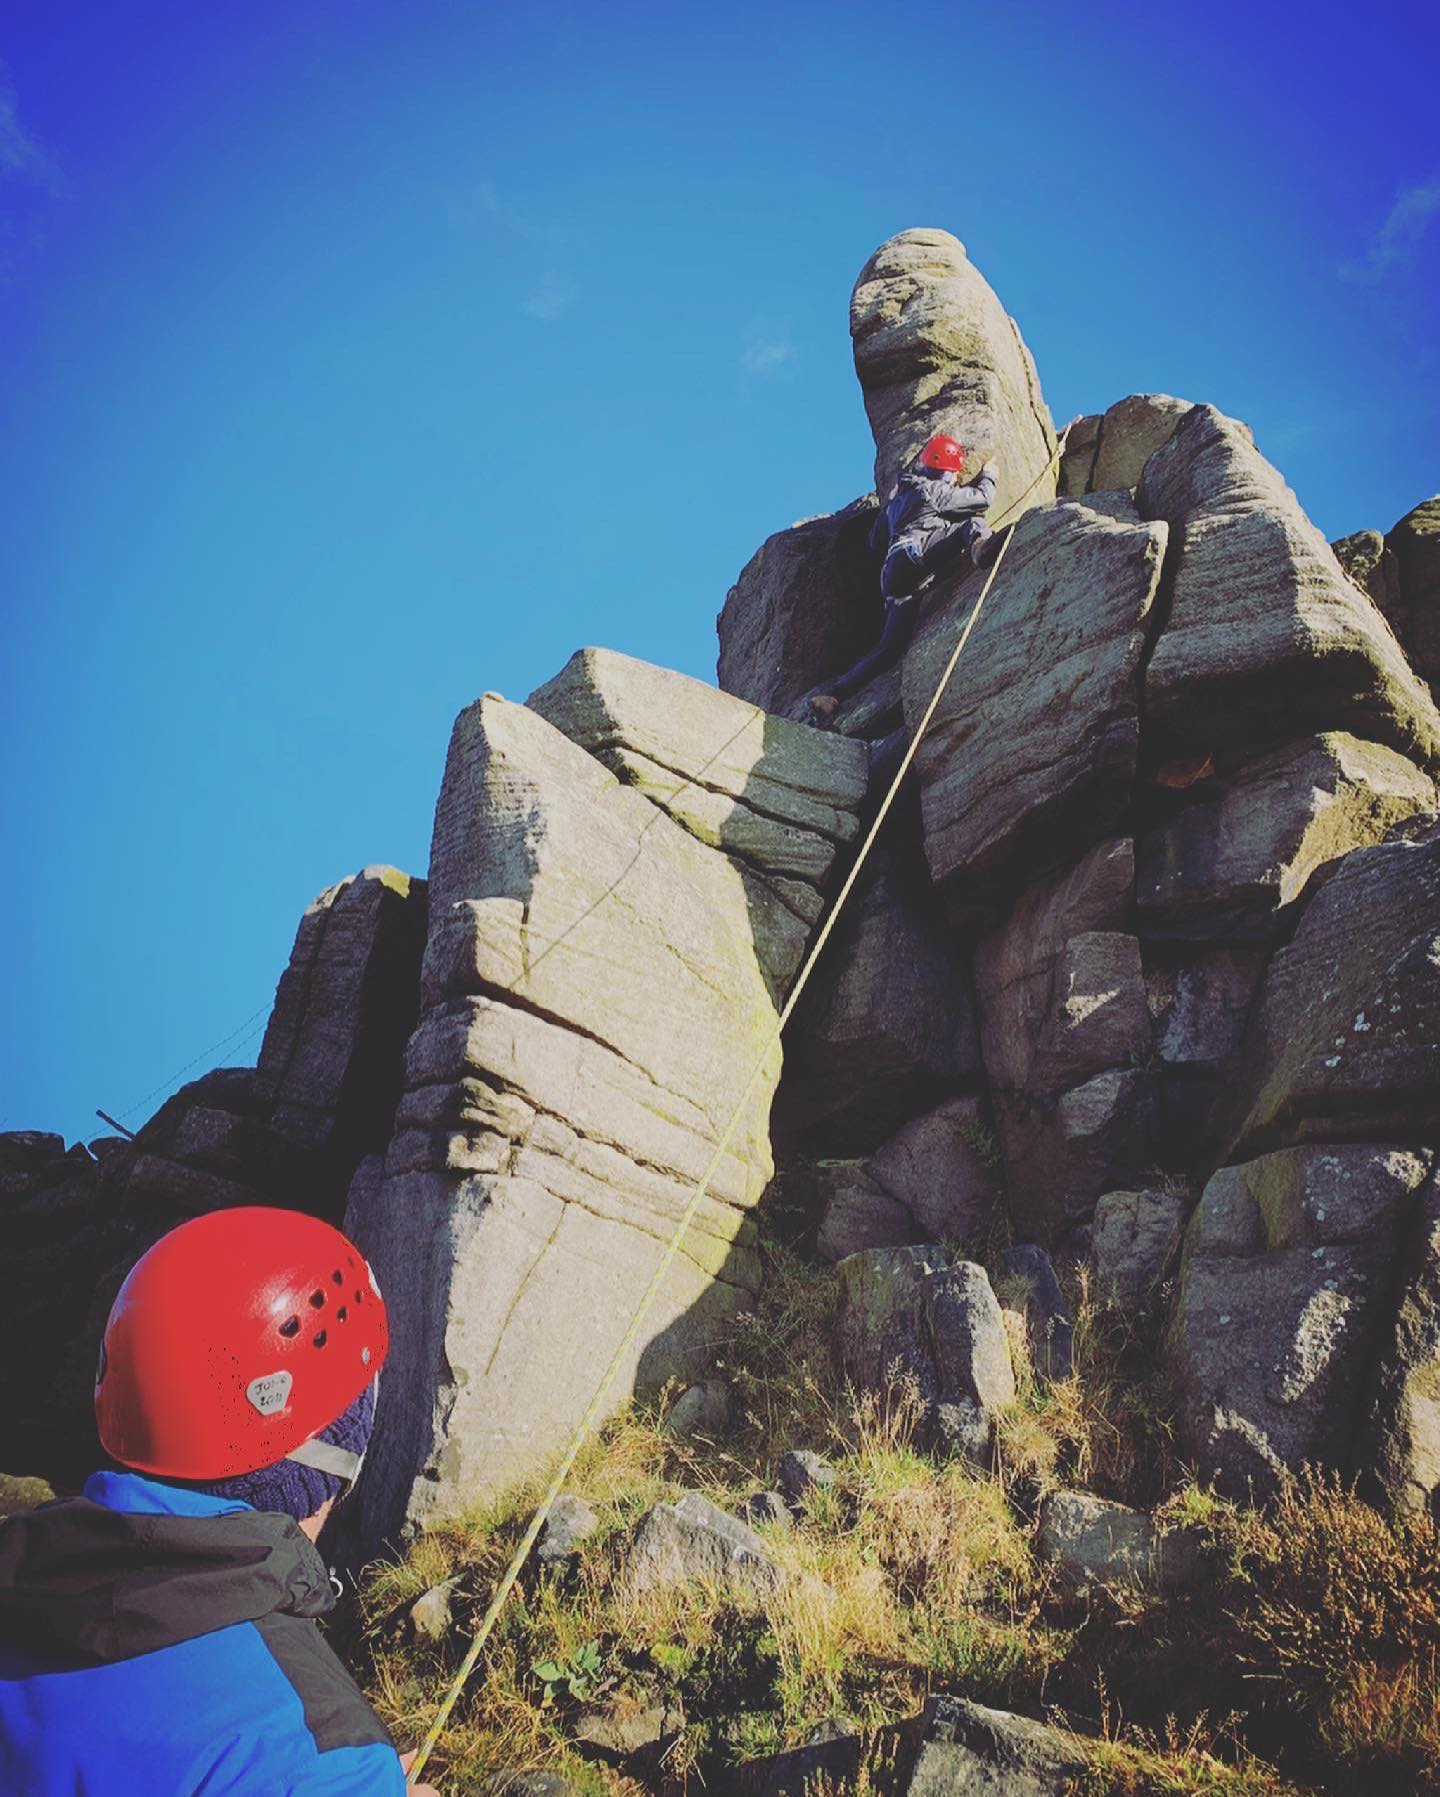 Spaces rock climbing and abseiling in the Peak District on: 18th April  1st May 8th May More info and booking at www.wilderness-development.com, link in our bio 🧗♀️⛰🧗♀️ . . . #wildernessdevelopment #smallbusiness #rockclimbing #climbing #scrambling #abseiling #trysomethingnew #peakdistrict #peakdistrictnationalpark #peakdistrictclimbing #mountainsfellsandhikes #roamtheuk #outdoorpursuits #outdooradventures #outdooractivities #nationalparksuk #booknow